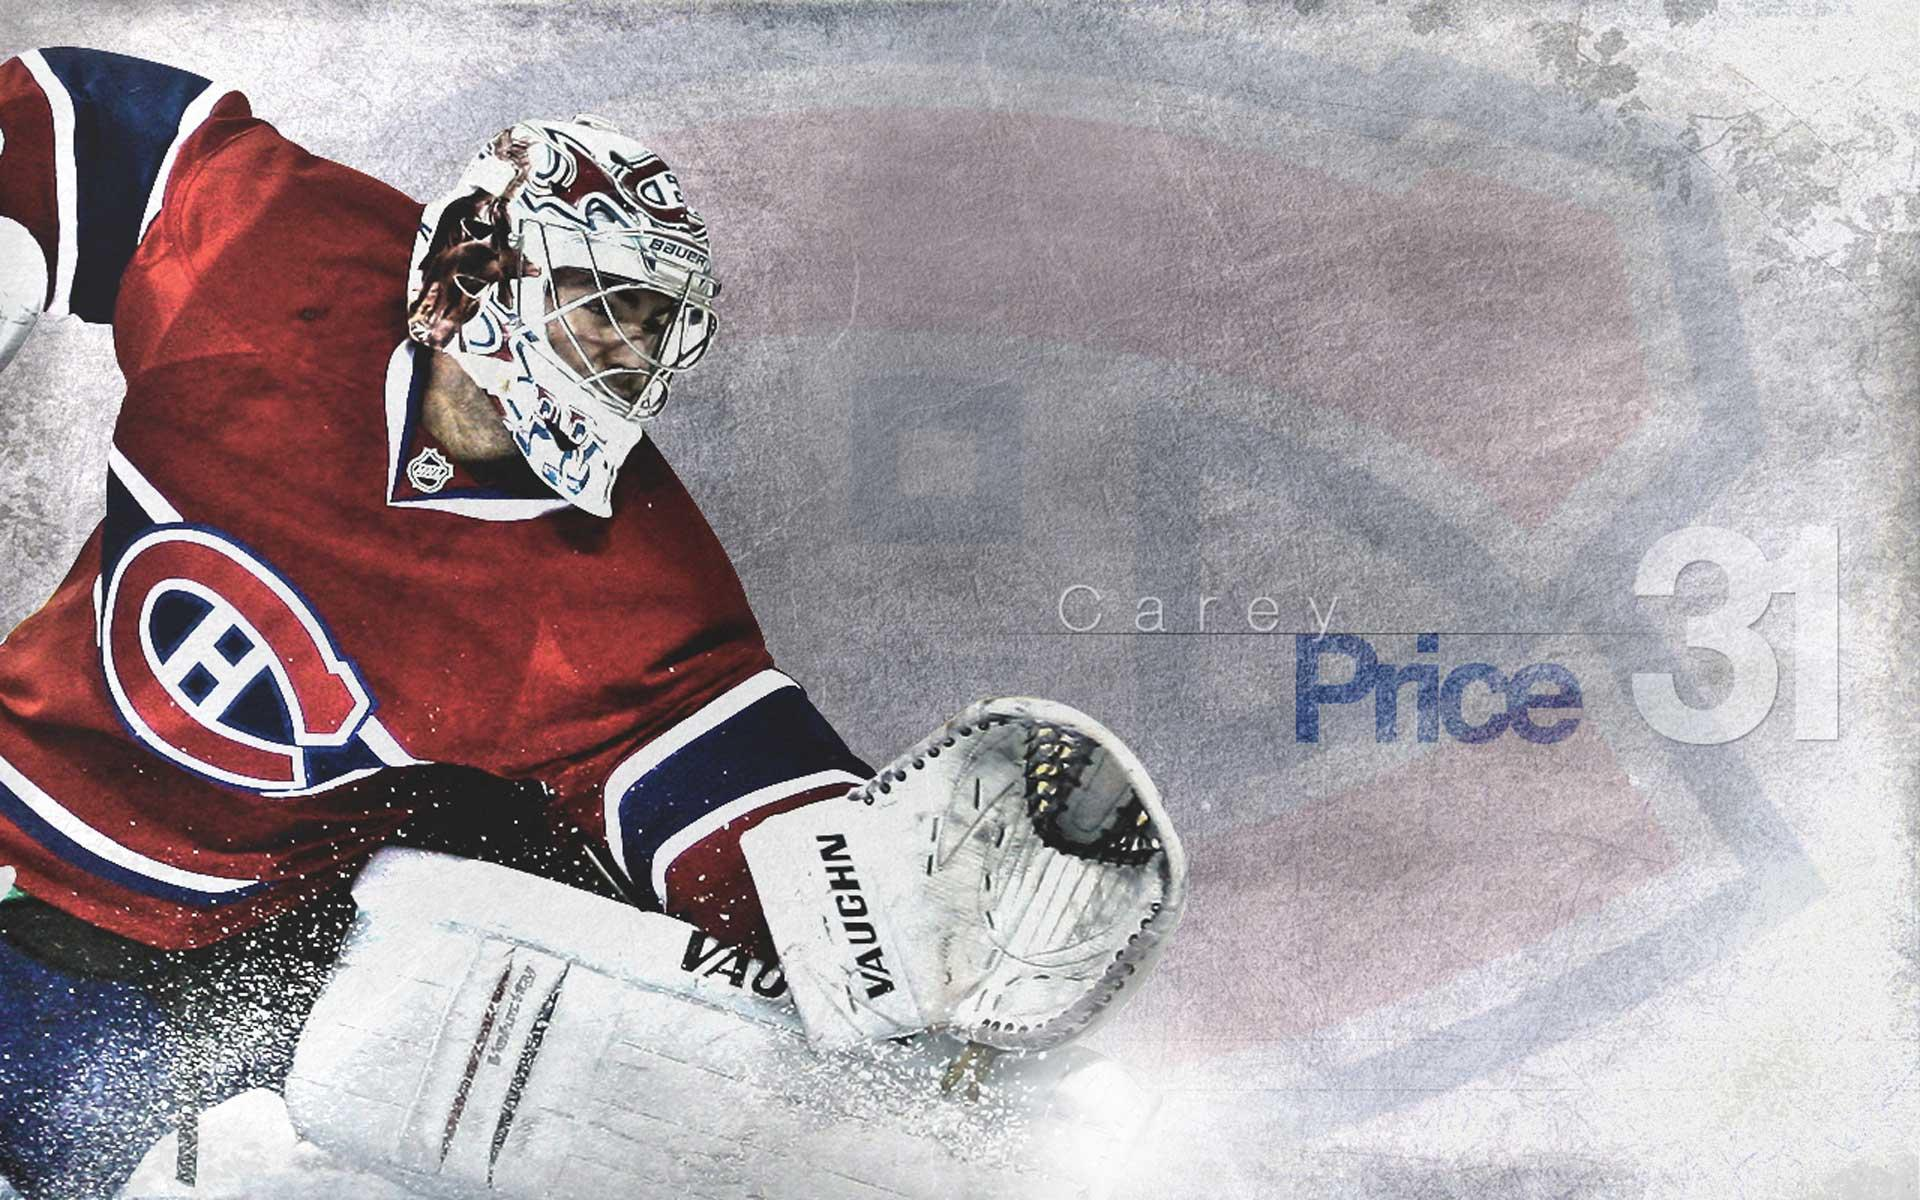 Montreal Canadiens background image Montreal Canadiens wallpapers 1920x1200